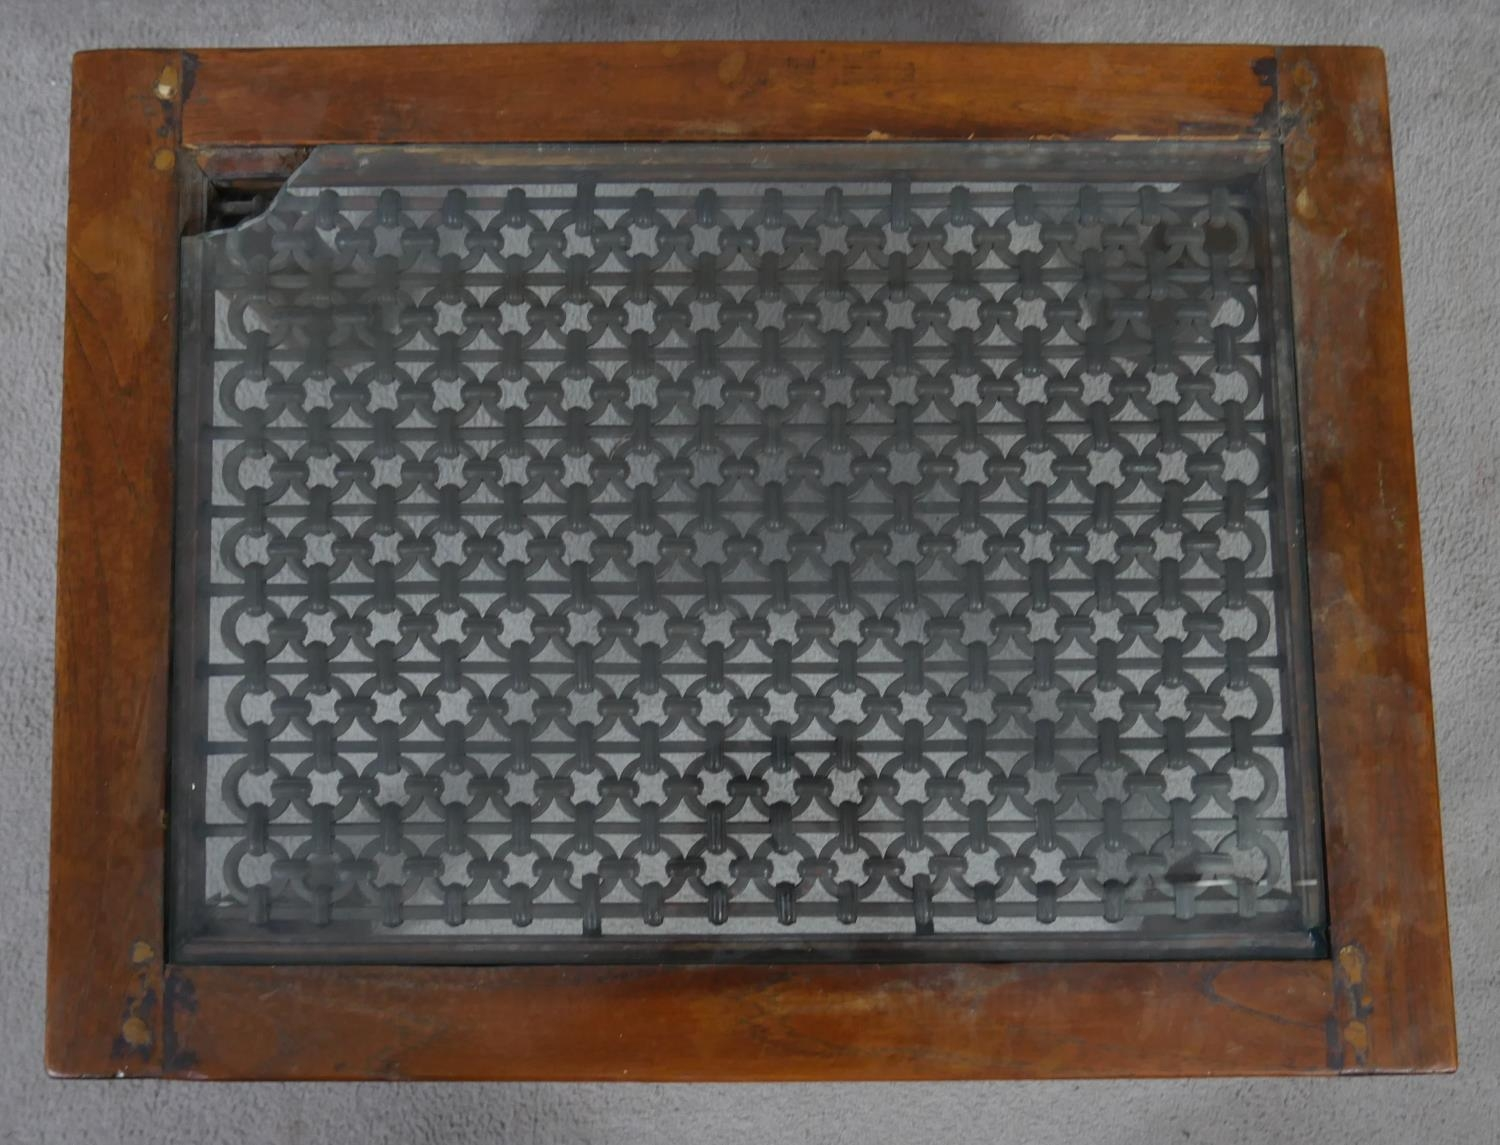 An Indian hardwood occasional table with plate glass on a metal lattice work inset top. H.38 L.68. - Image 2 of 5